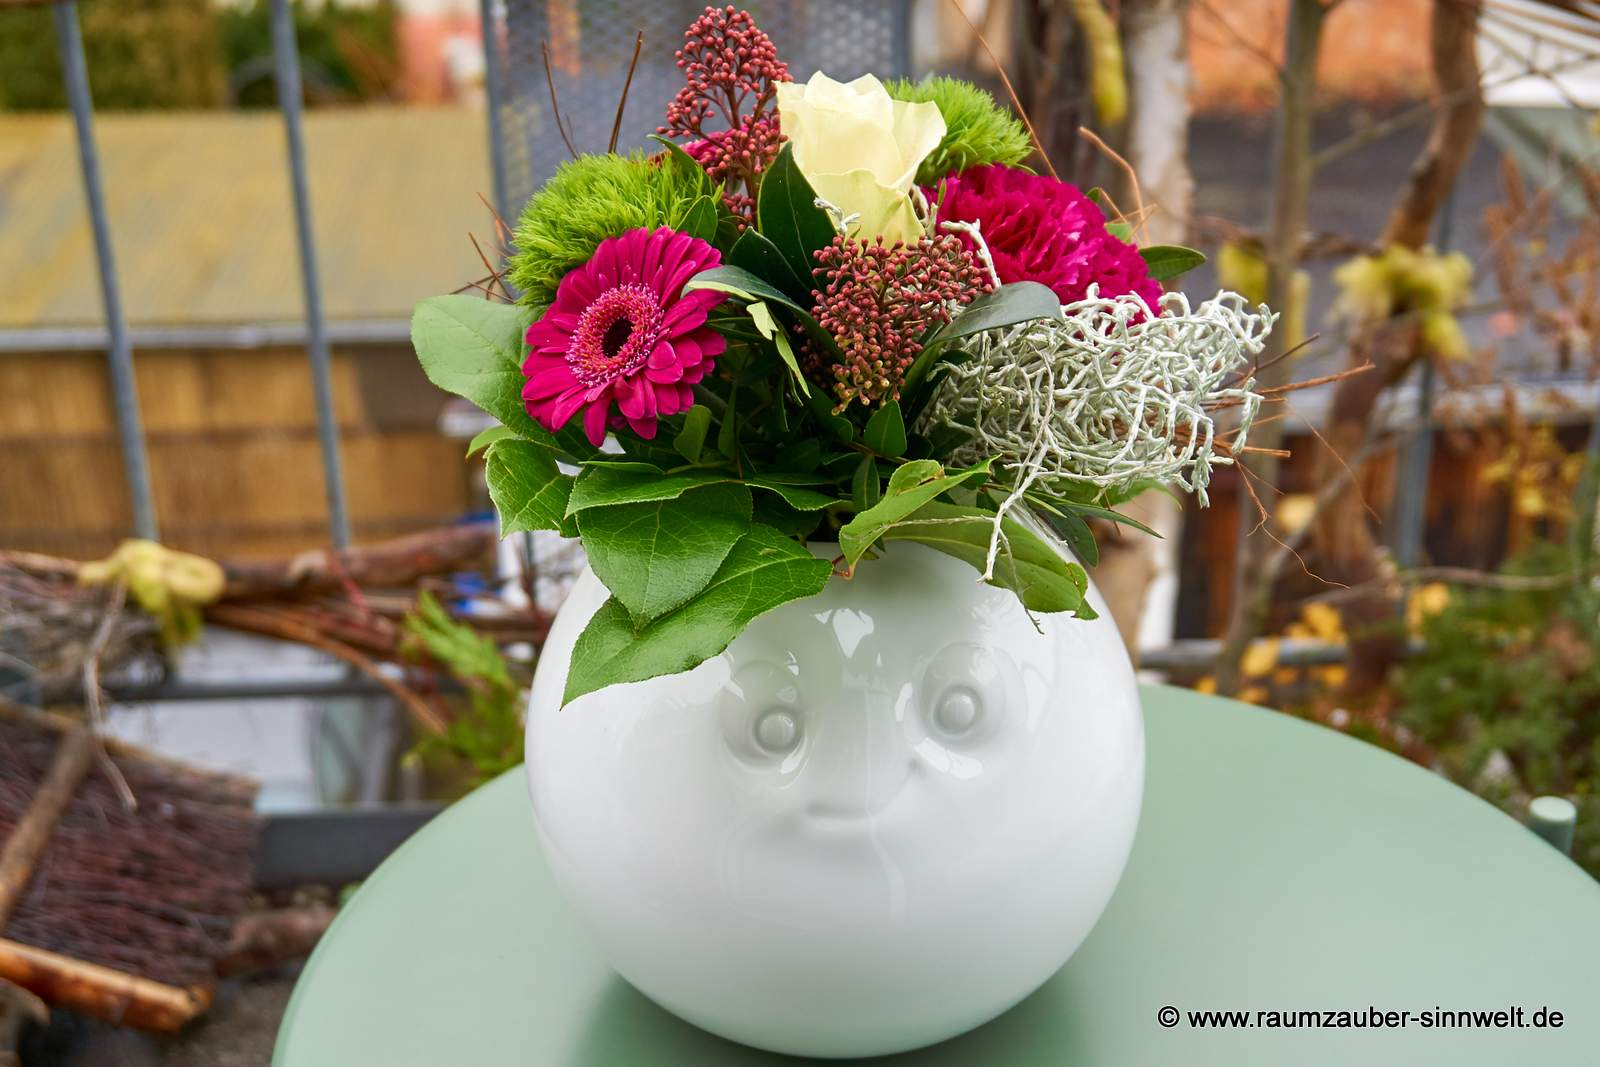 FIFTYEIGHT PRODUCTS Vase amüsiert mit Blumenarrangement